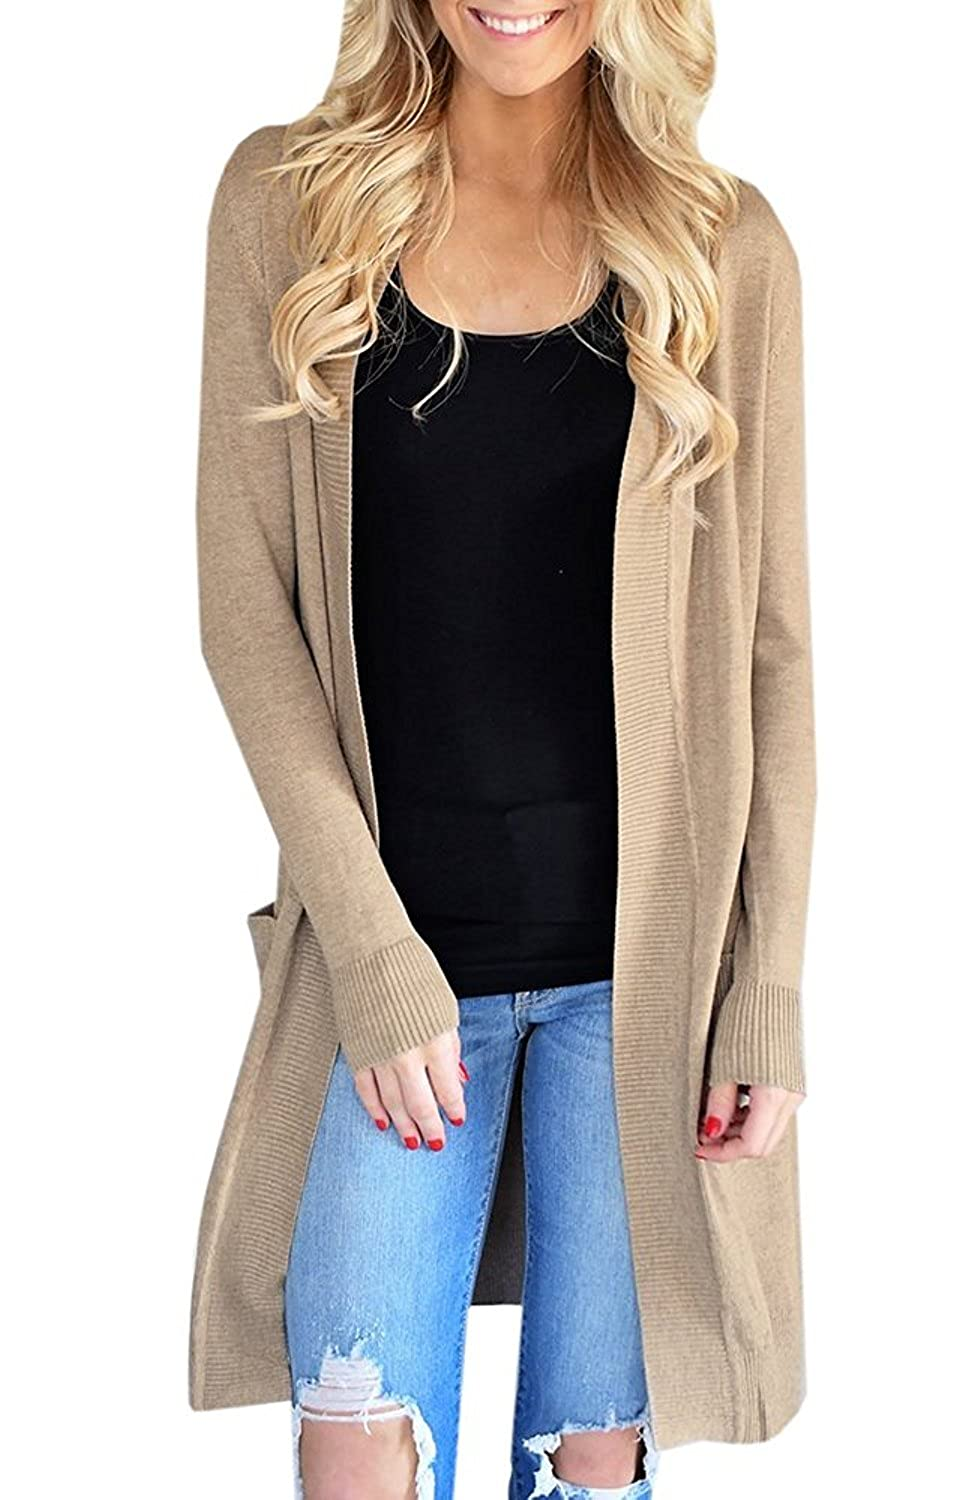 dcb68945f4 VERSATILE - Enjoy this draped cardigan for every day office wear or  dressier events. This open cardigan flatters any figure with a slimming  effect and form ...